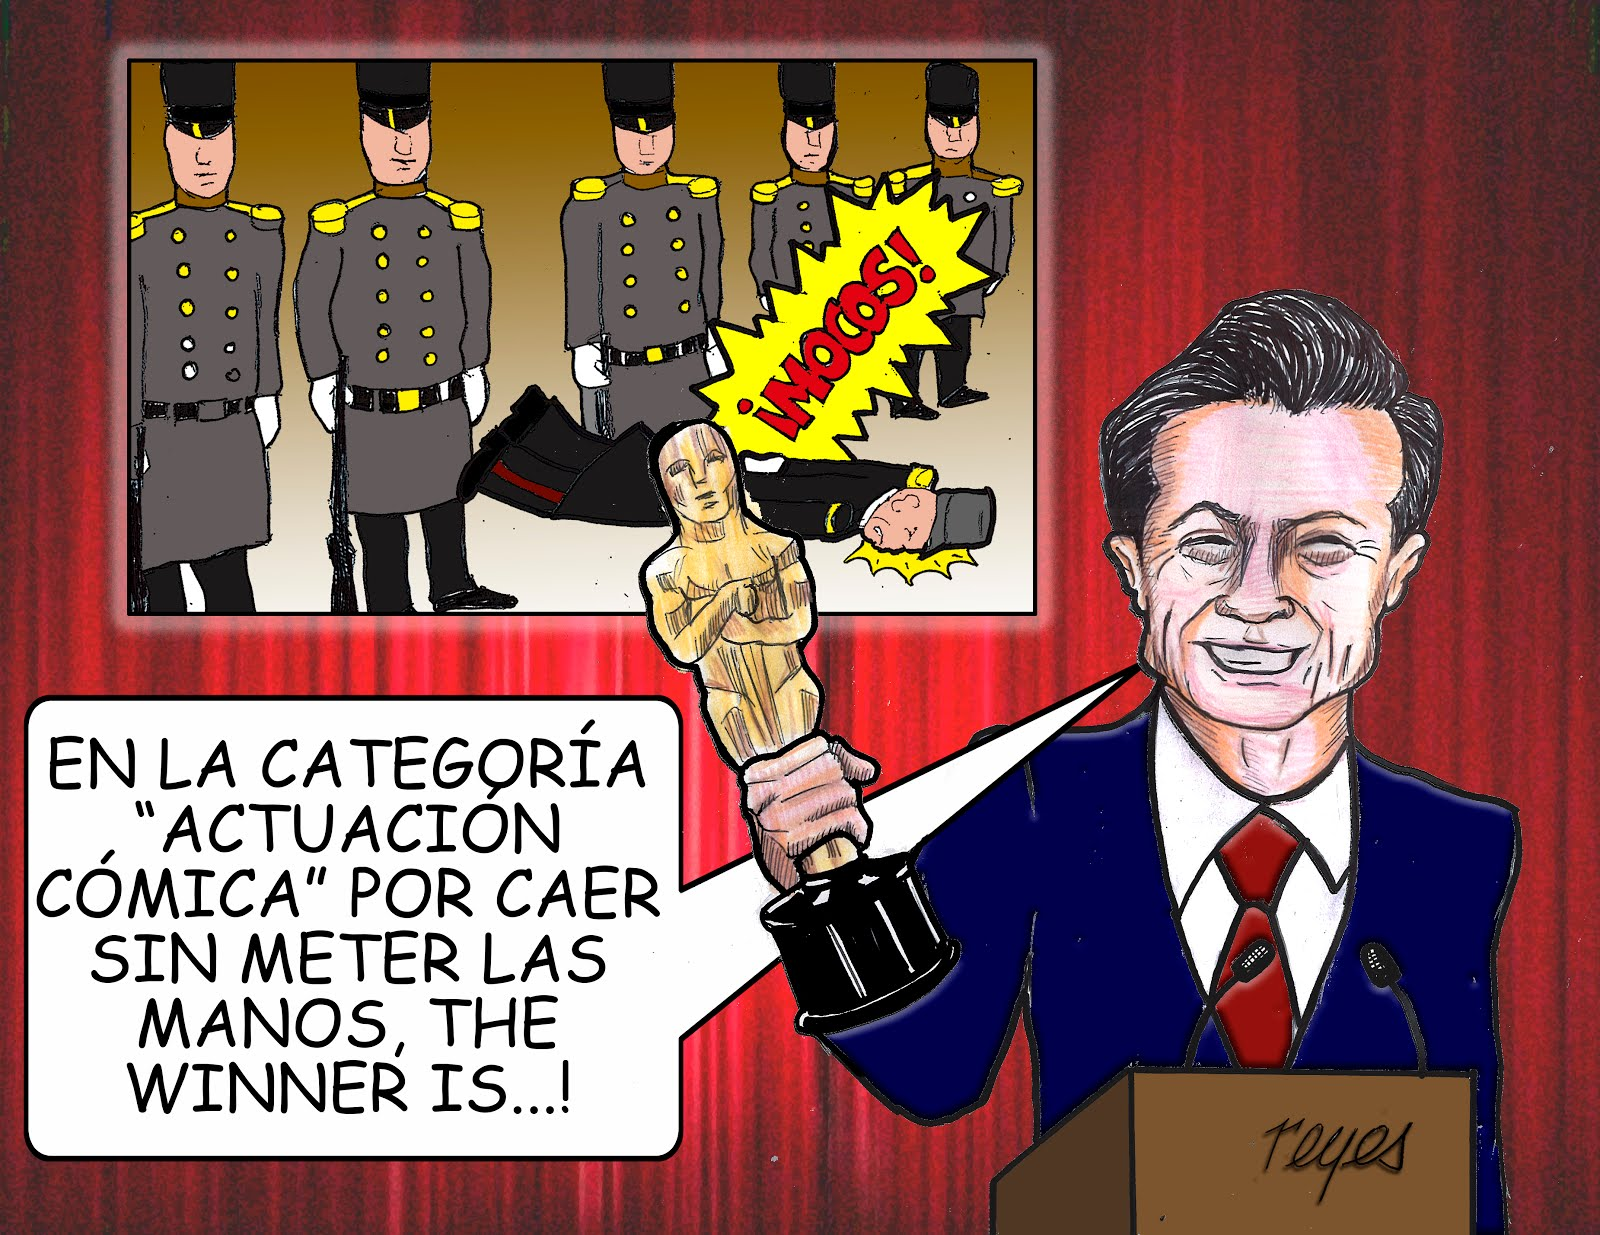 And the winner is...!